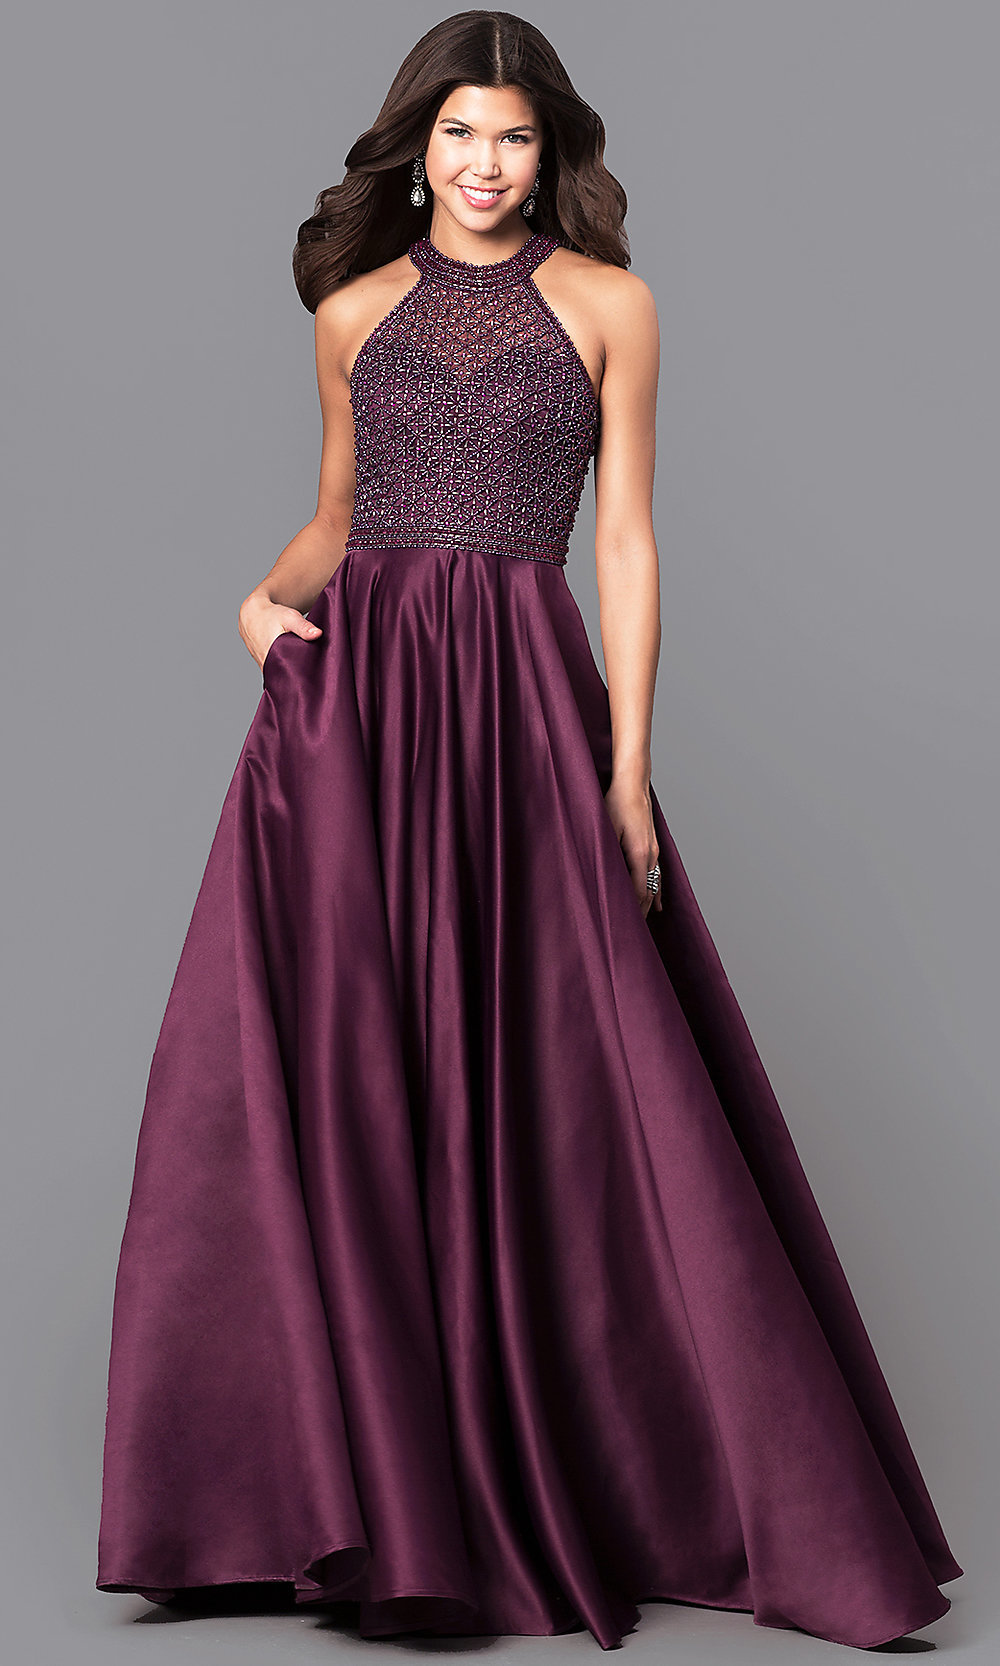 b3aa6ae9022 Long Eggplant Purple Satin Prom Dress With Pockets - Data Dynamic AG